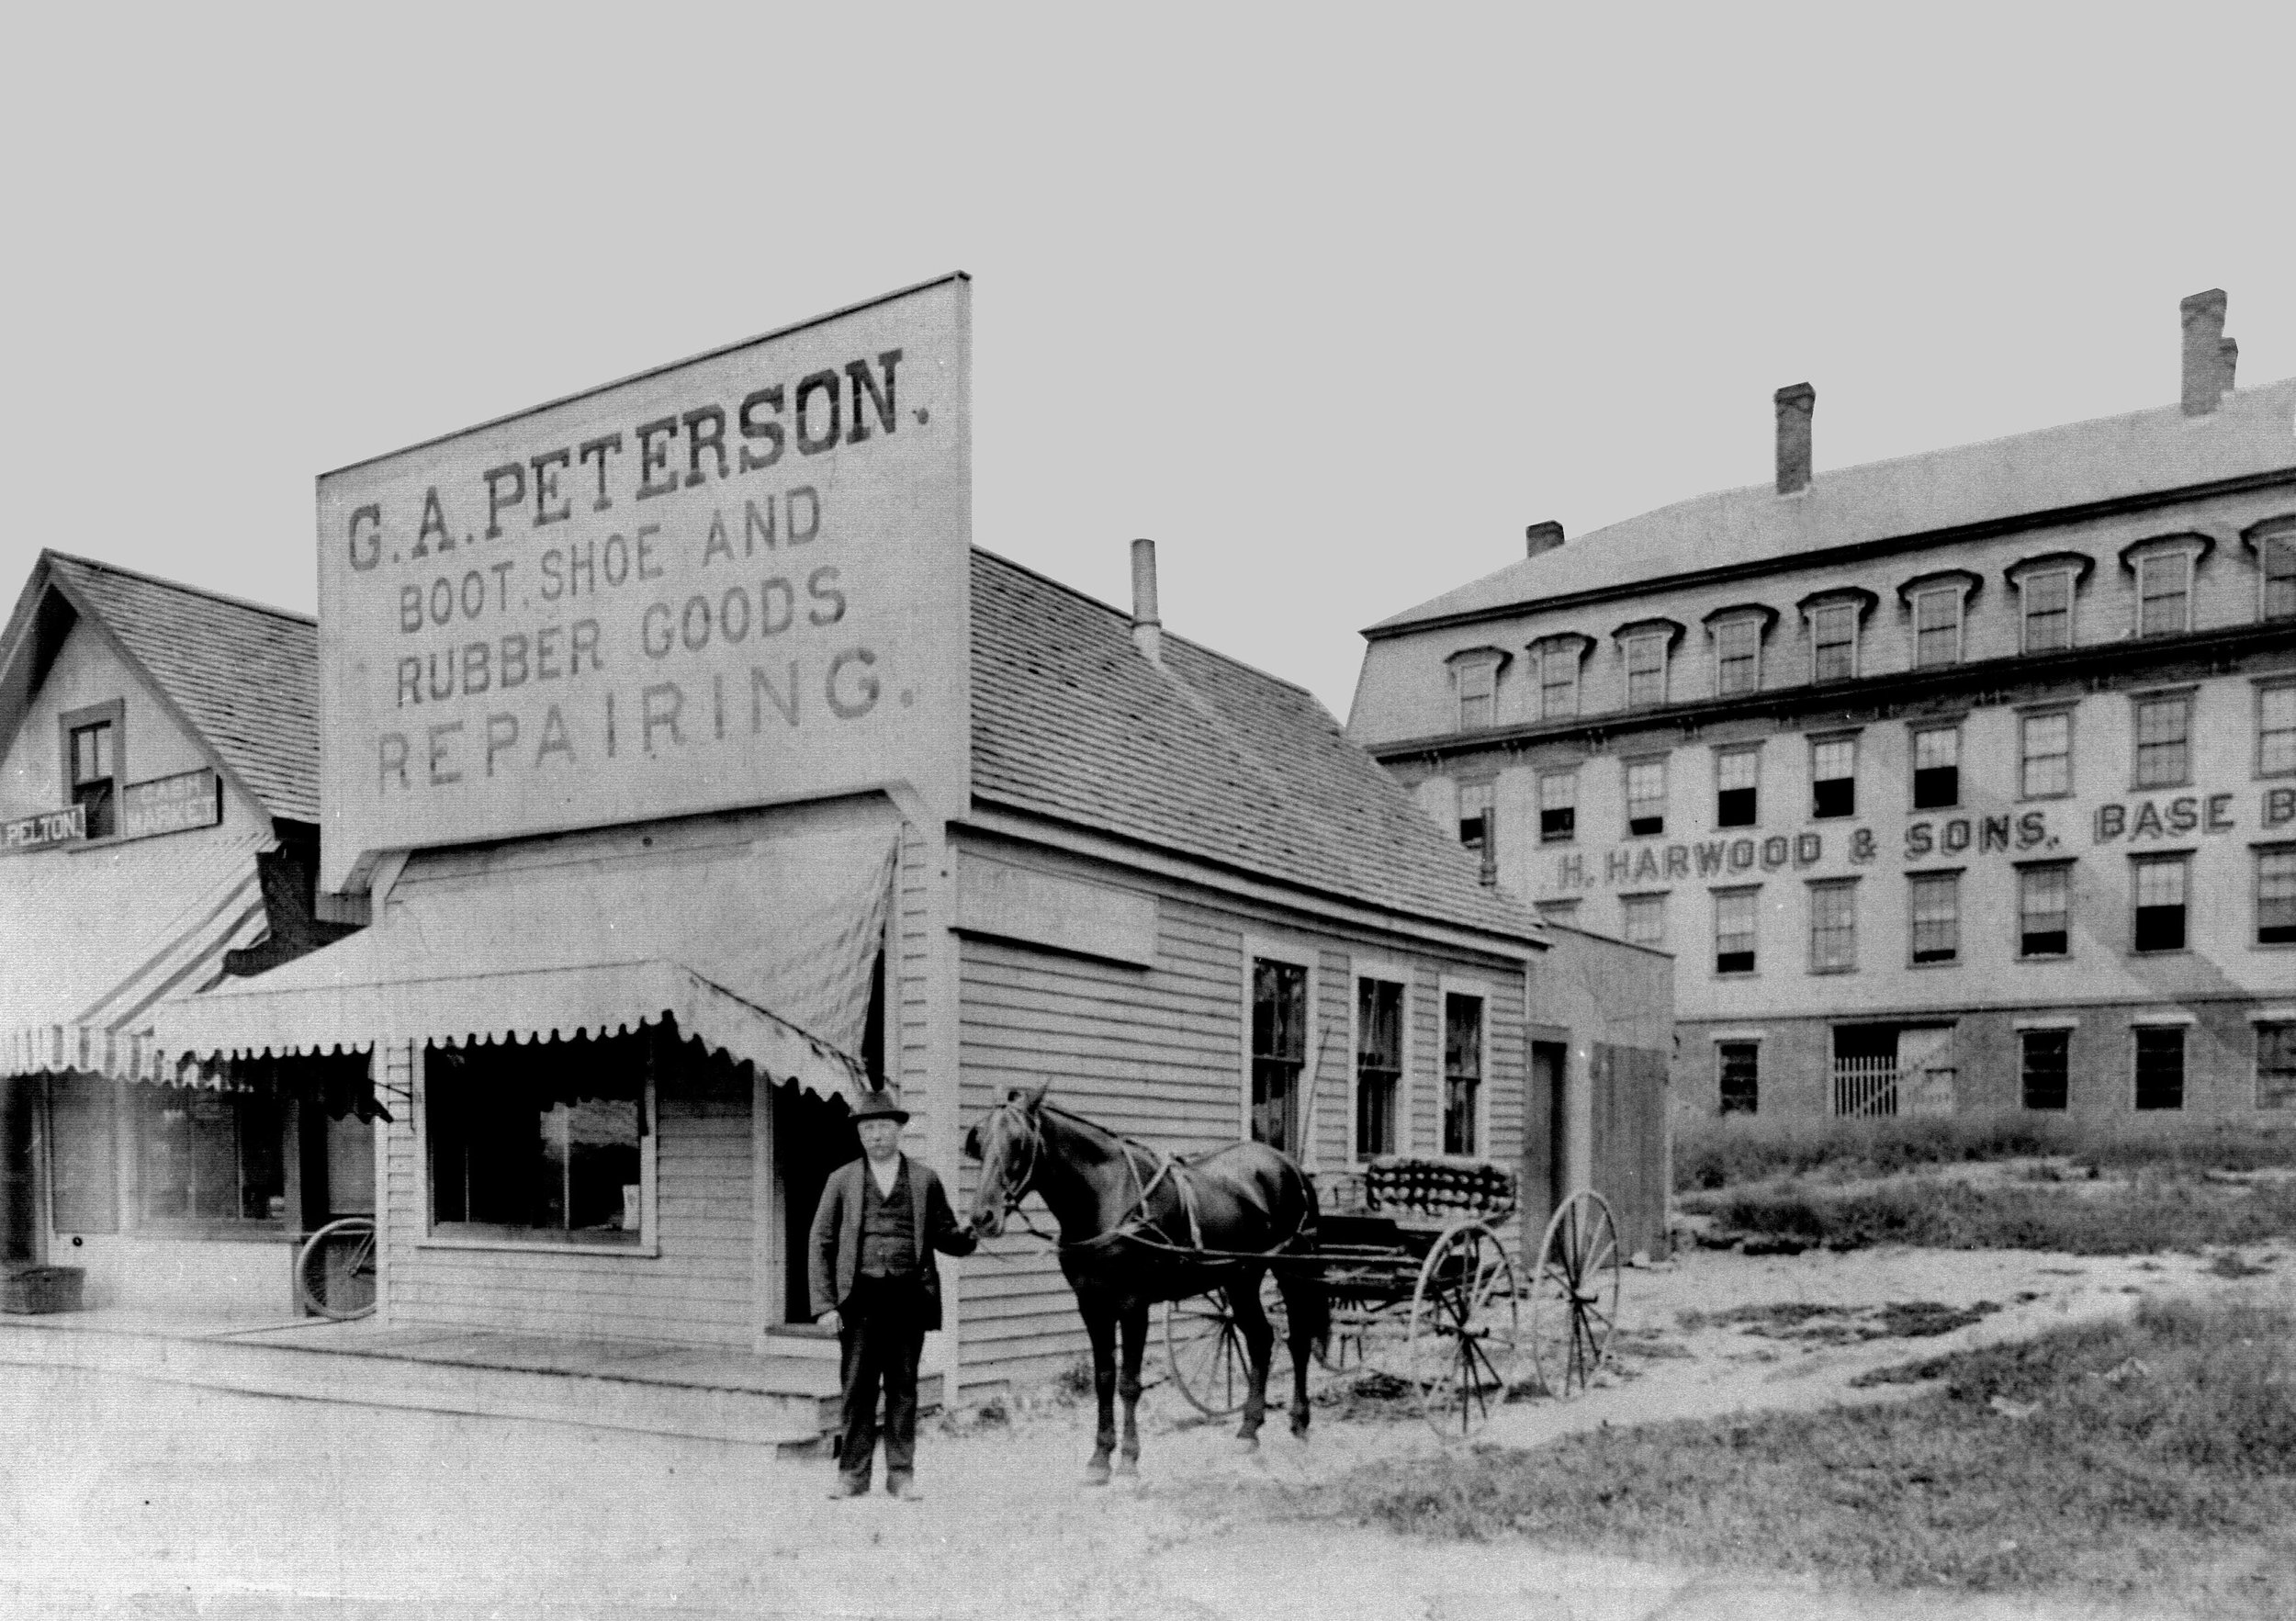 G. A. Peterson repair shop north of Natick's town center.